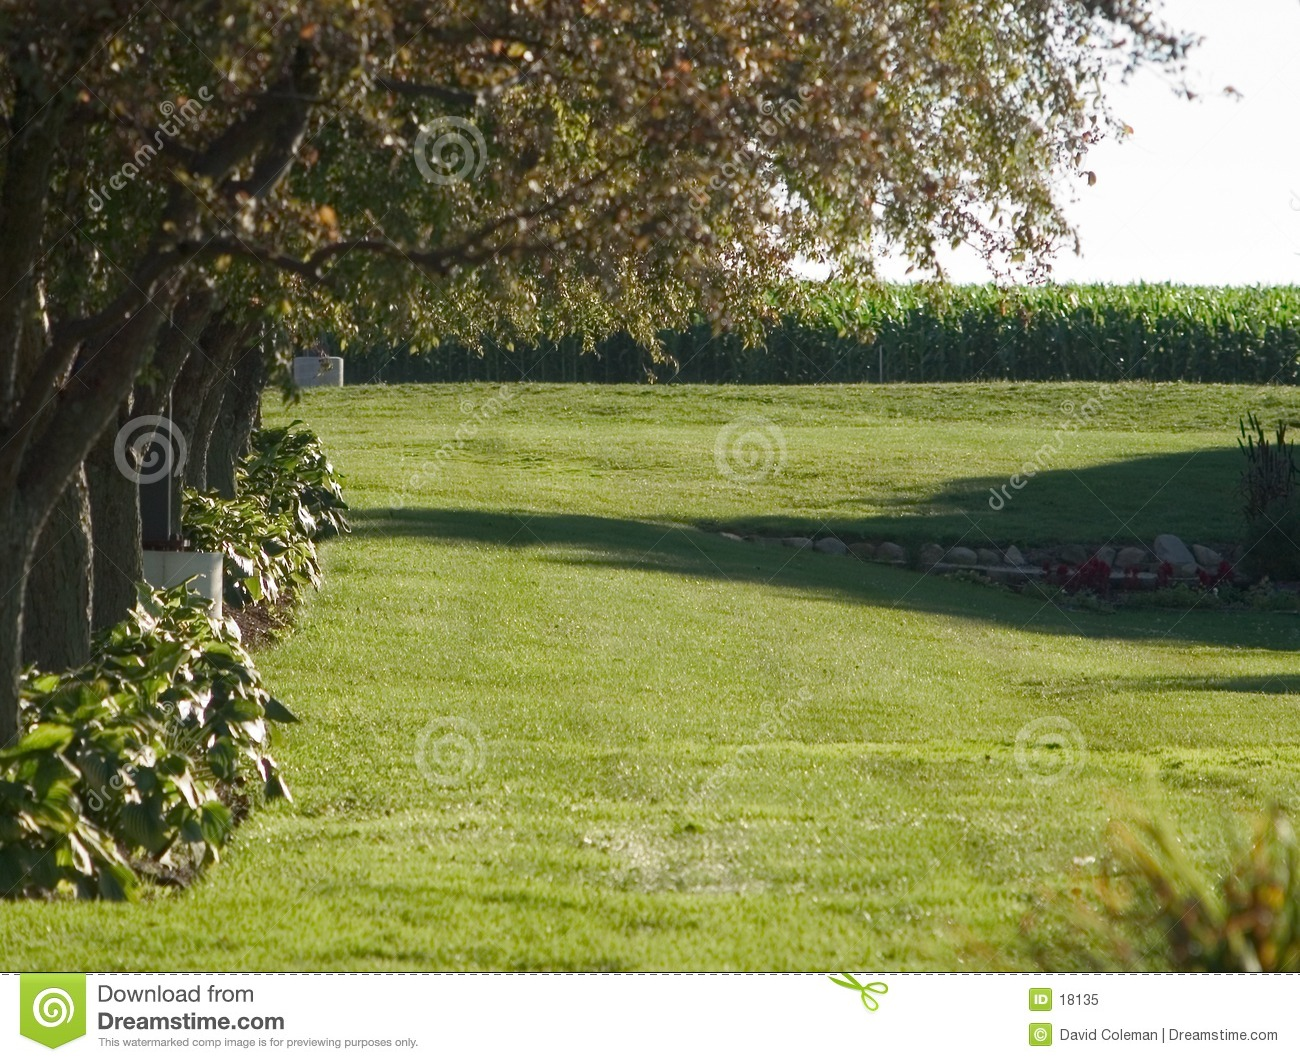 Tree lined lawn